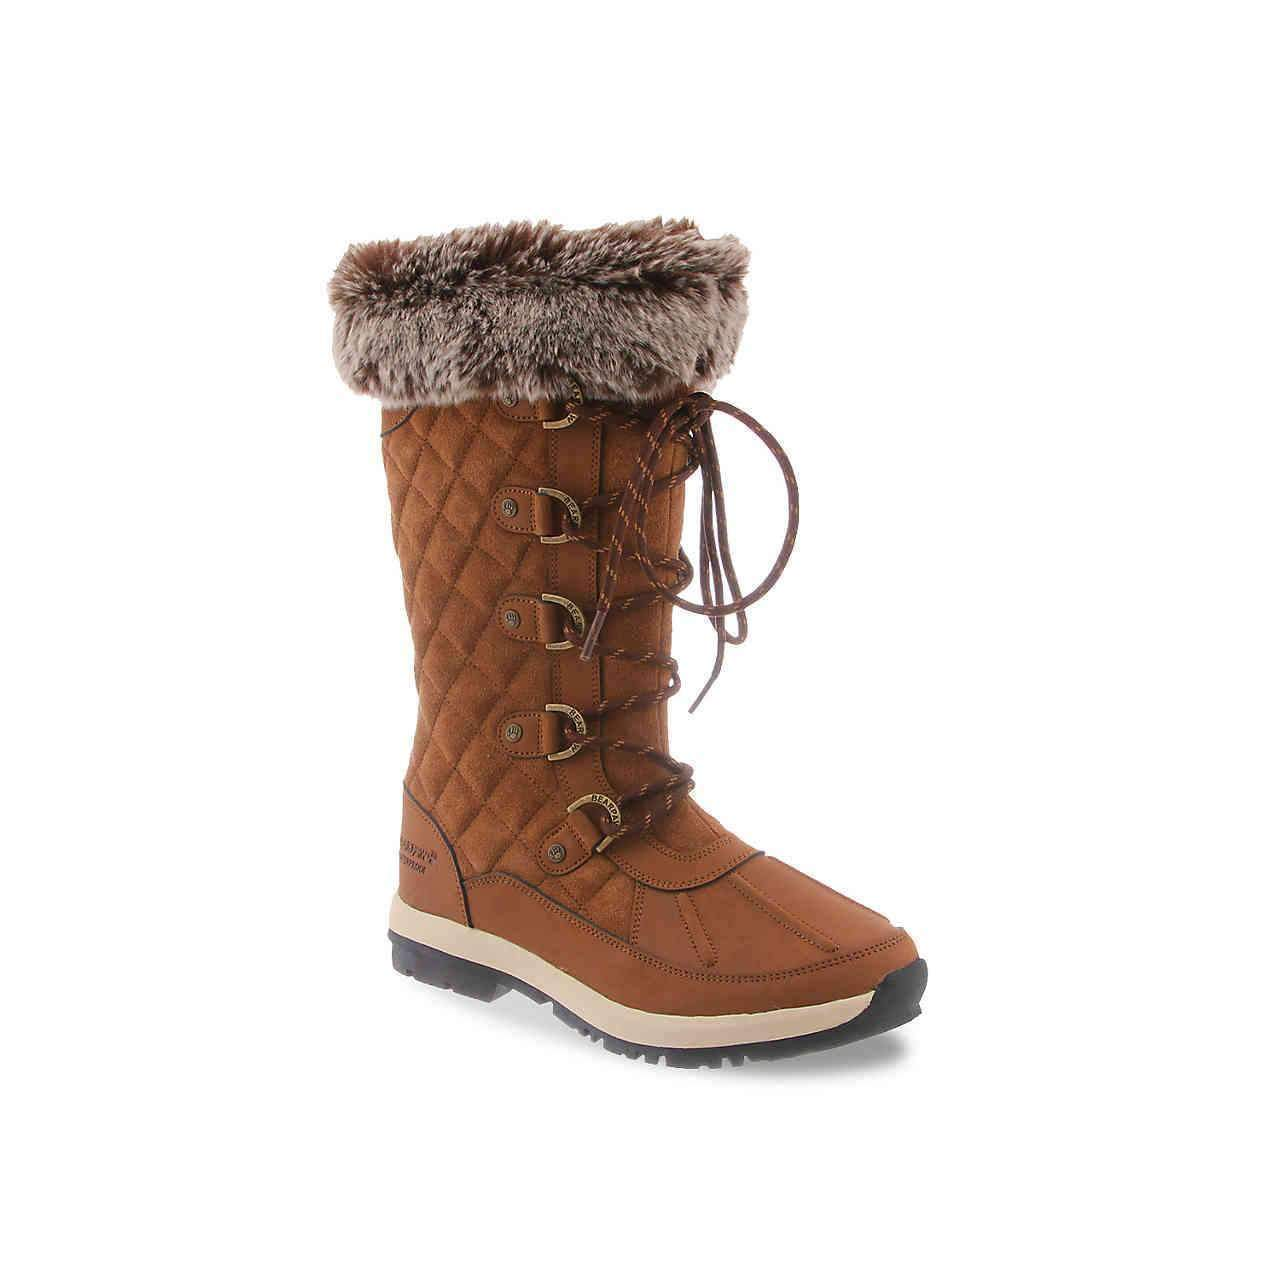 BEARPAW Gwyneth Fashion Boot 9 / Hickory Bearpaw  kick-it-shoe-outlet.myshopify.com Kick-it Shoe Outlet Shoes Cheap